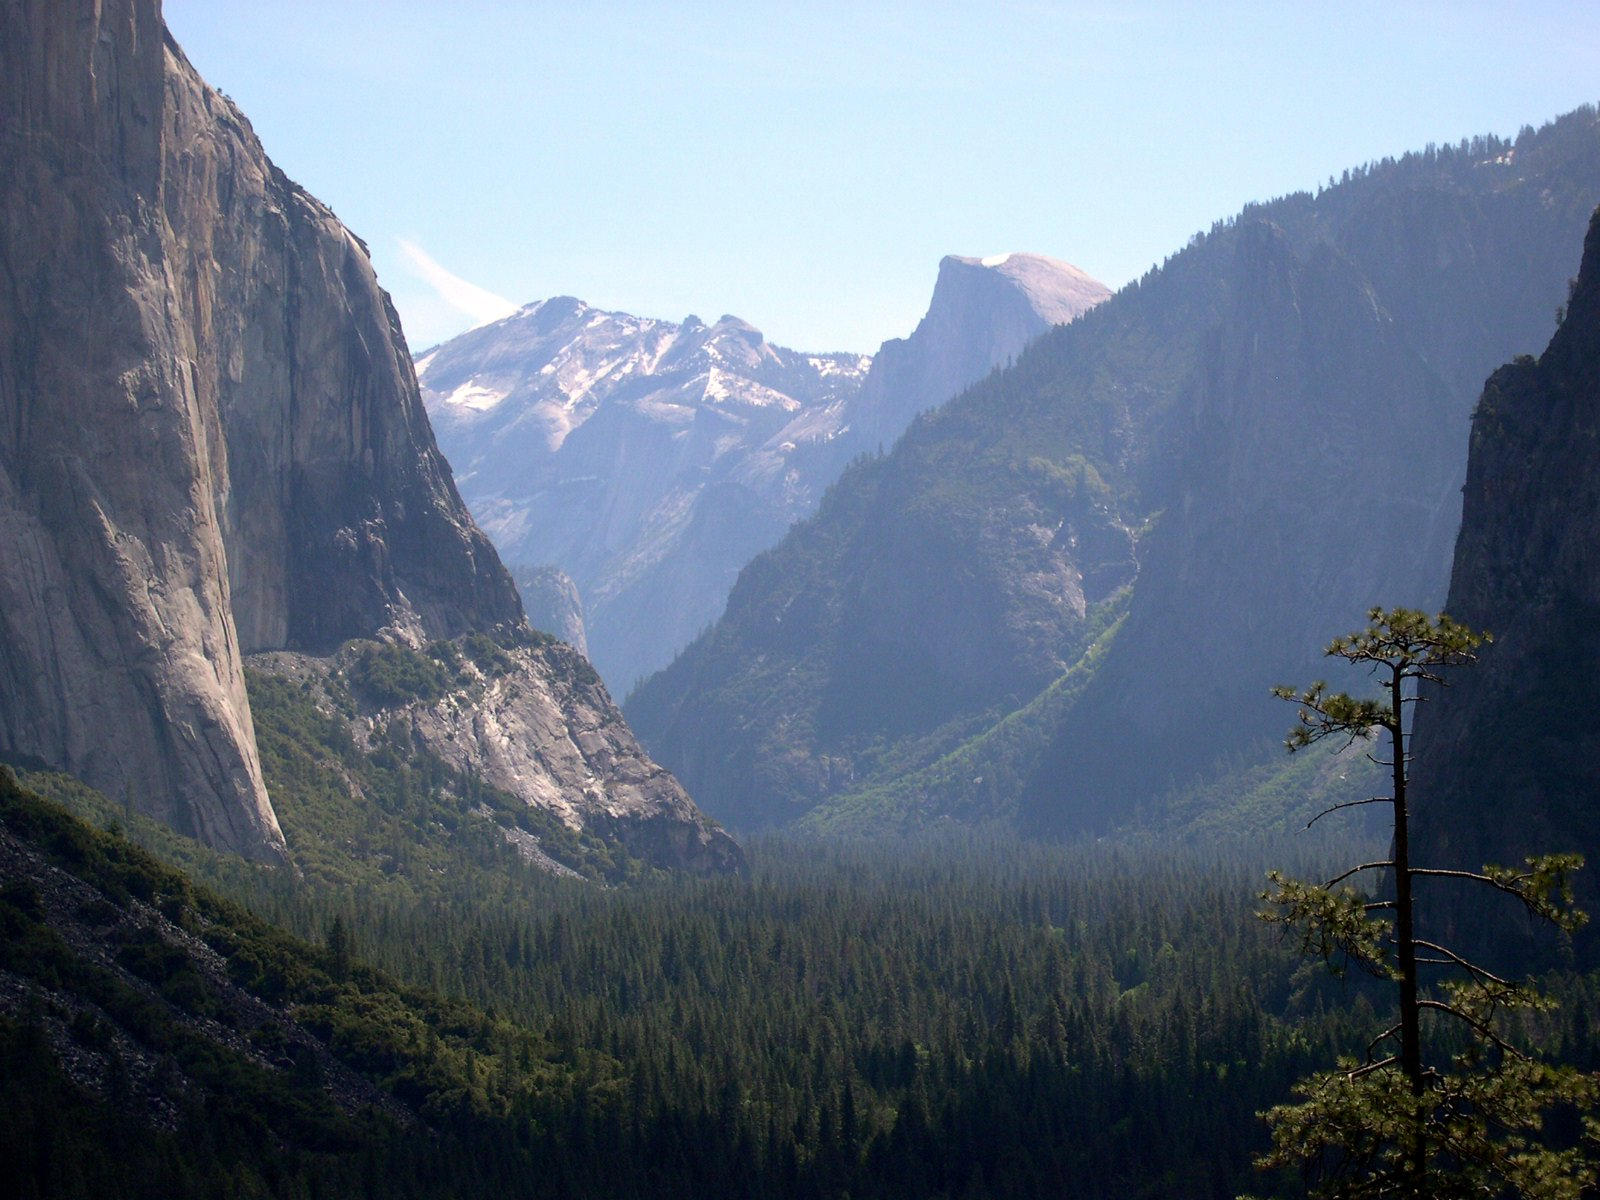 Yosemite National Park IV by dhunley